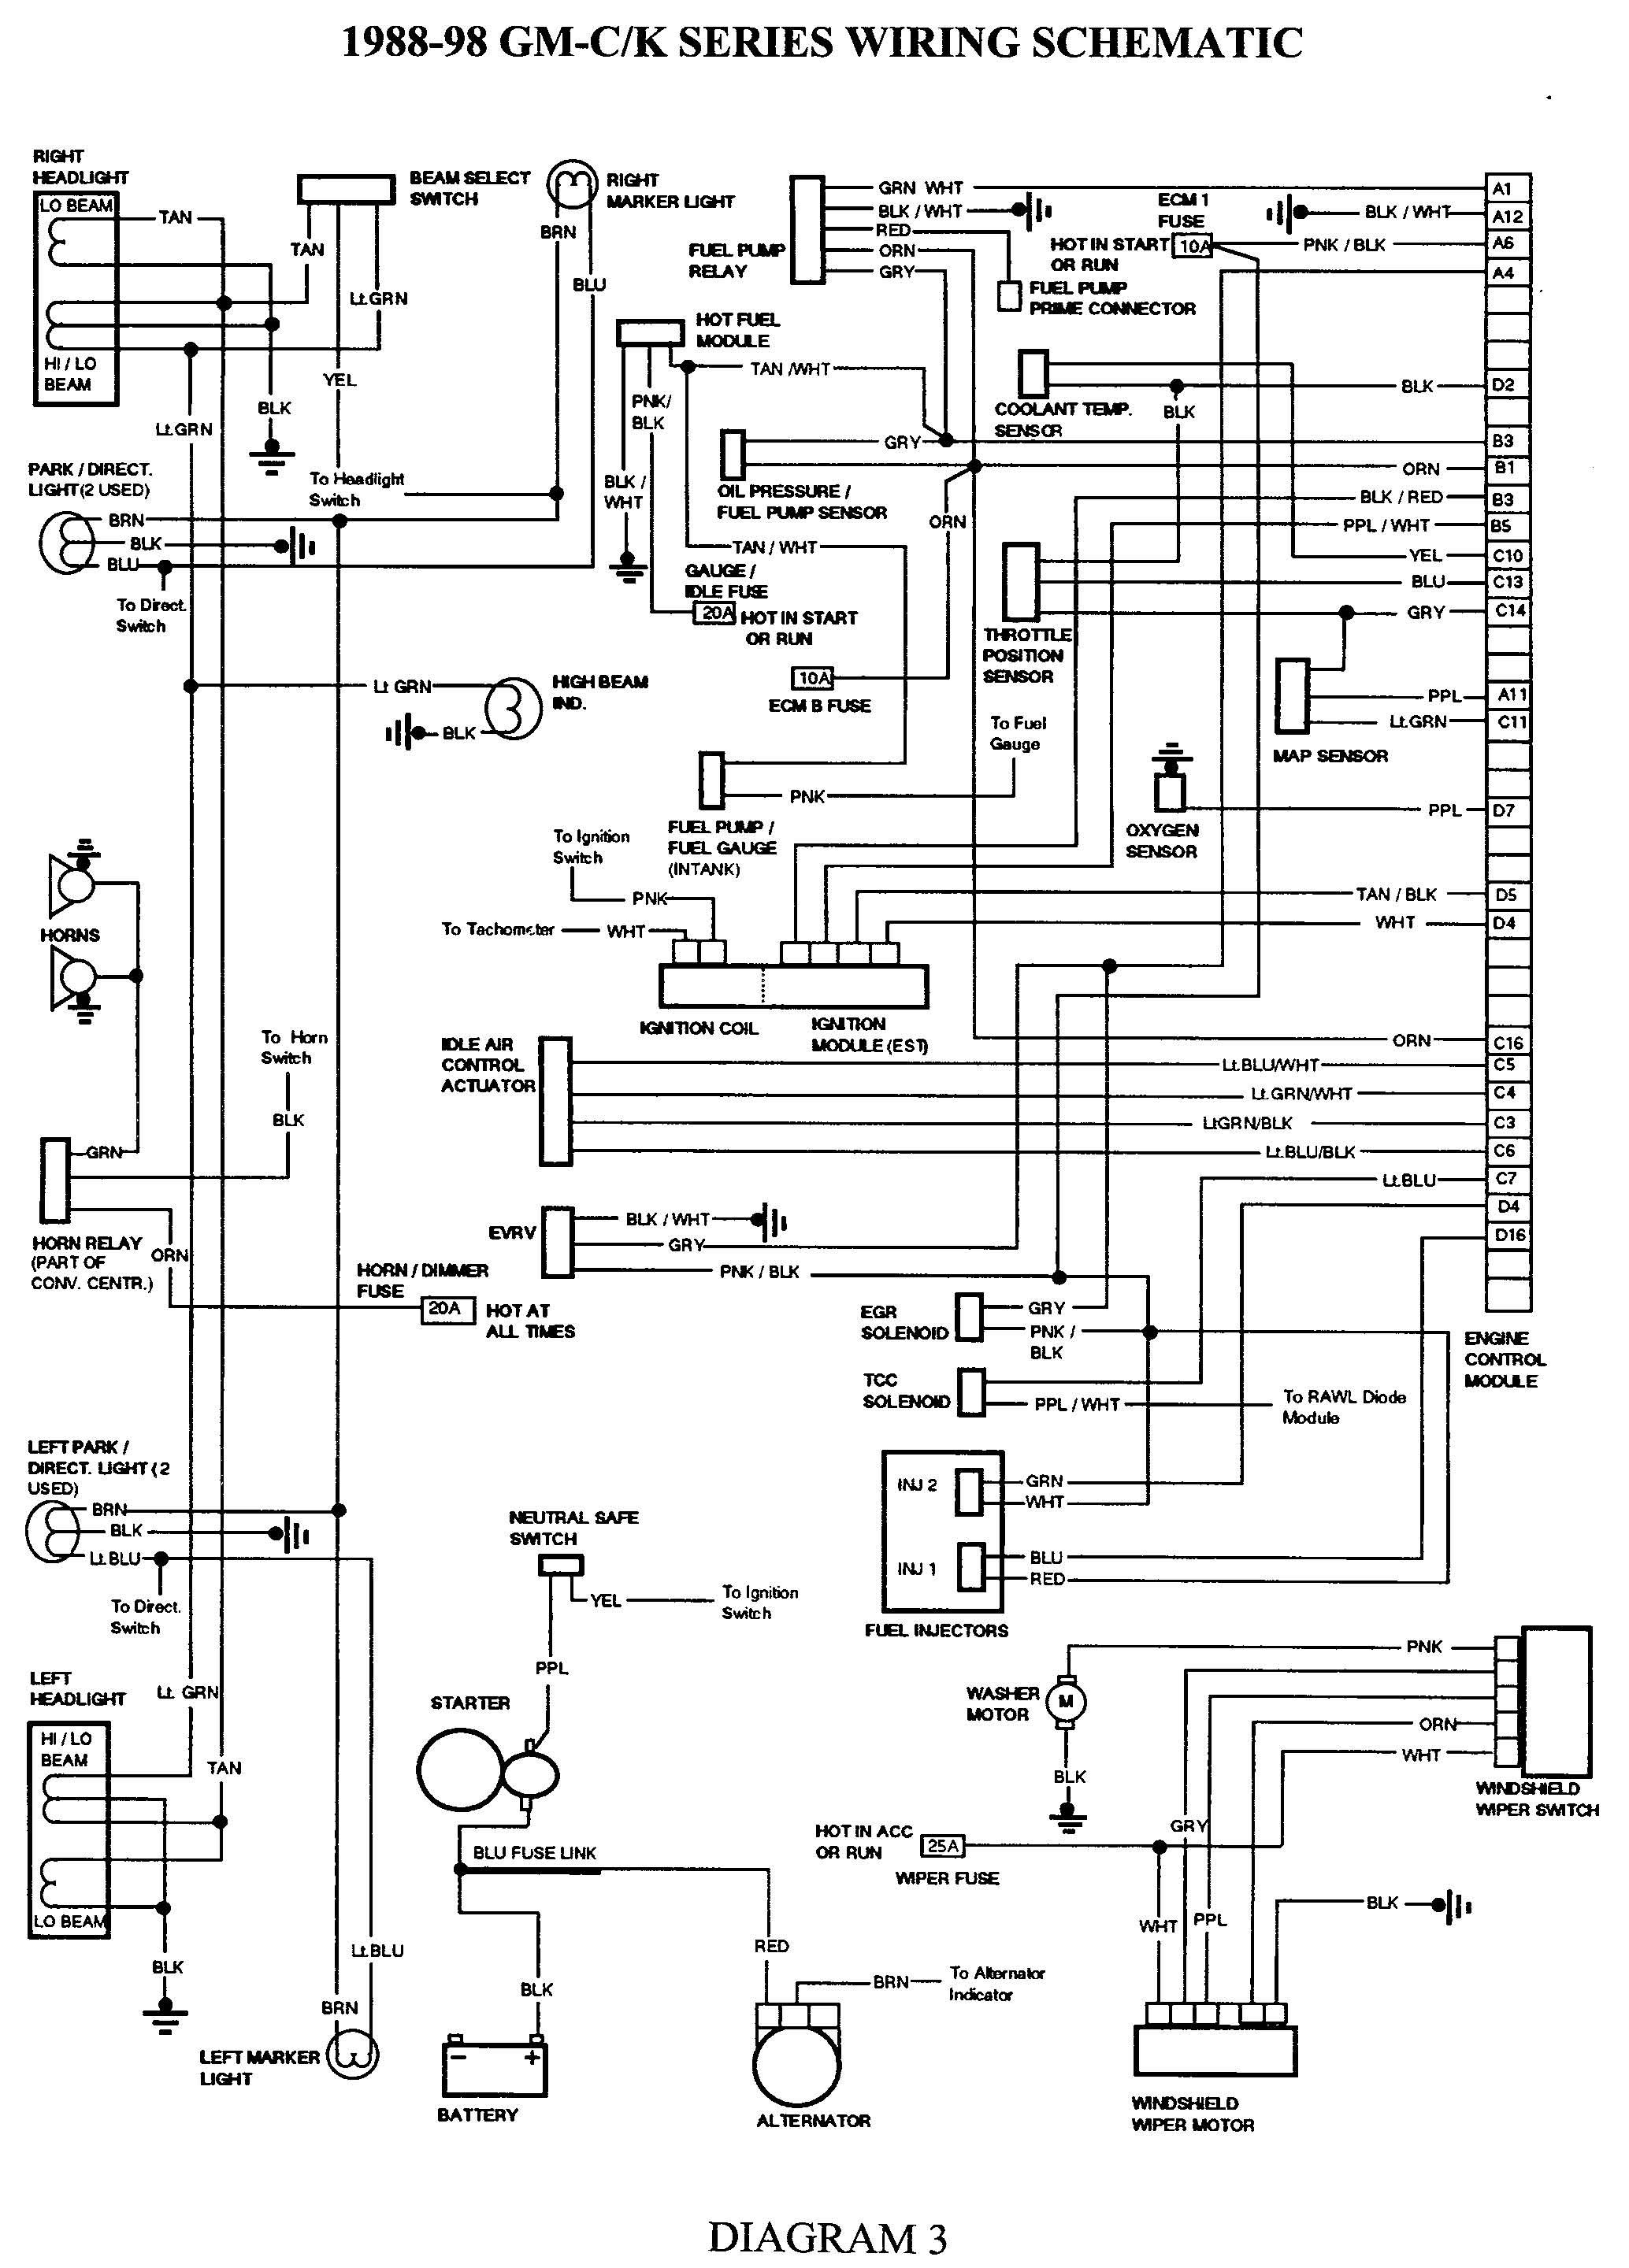 Ge Air Conditioner Code 88 O General Air Conditioner Wiring Diagram on